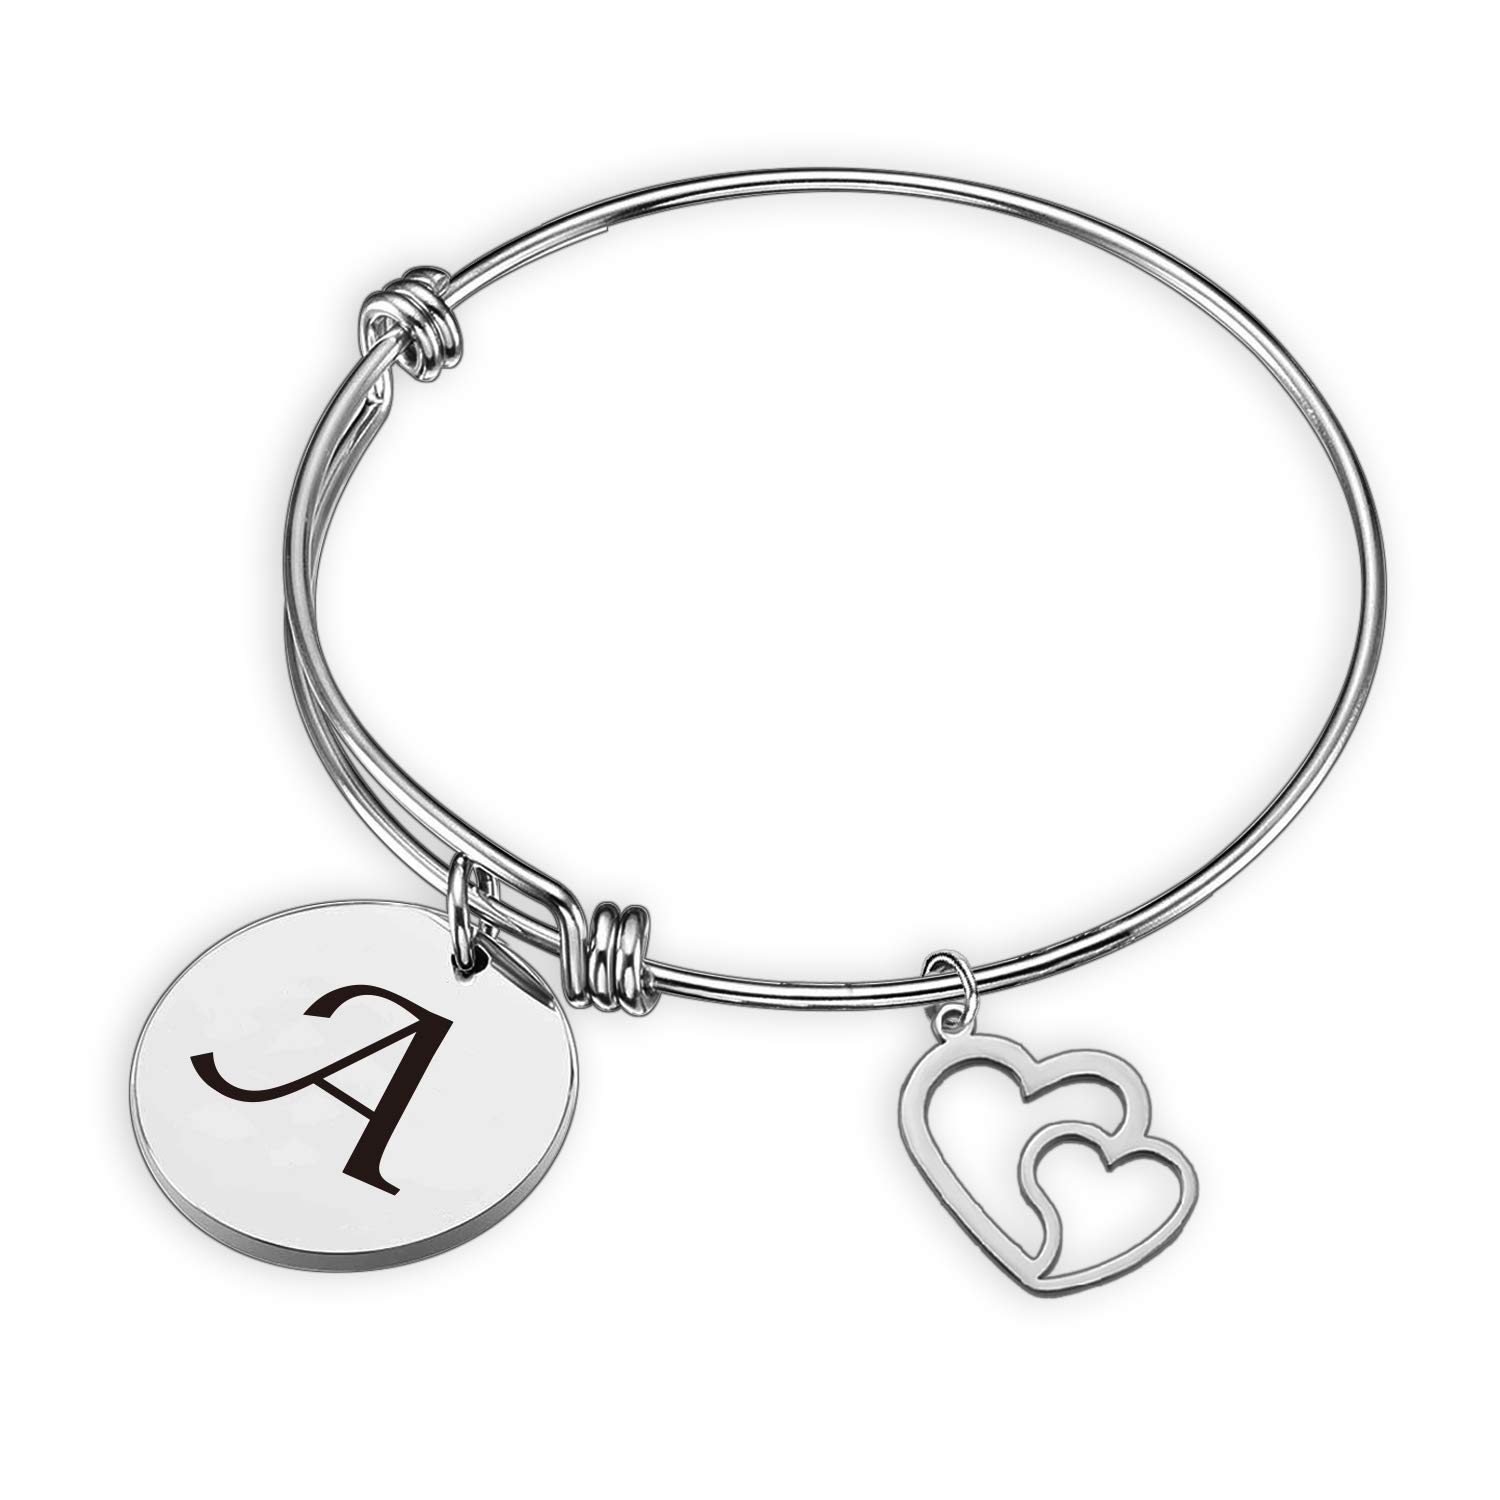 SIDIMELO Initial Bracelet Letter Bracelet with Heart Charm Personalized Jewelry Memory Bracelet Birthday Gifts Gift for her Birthday Christmas Jewelry Gift